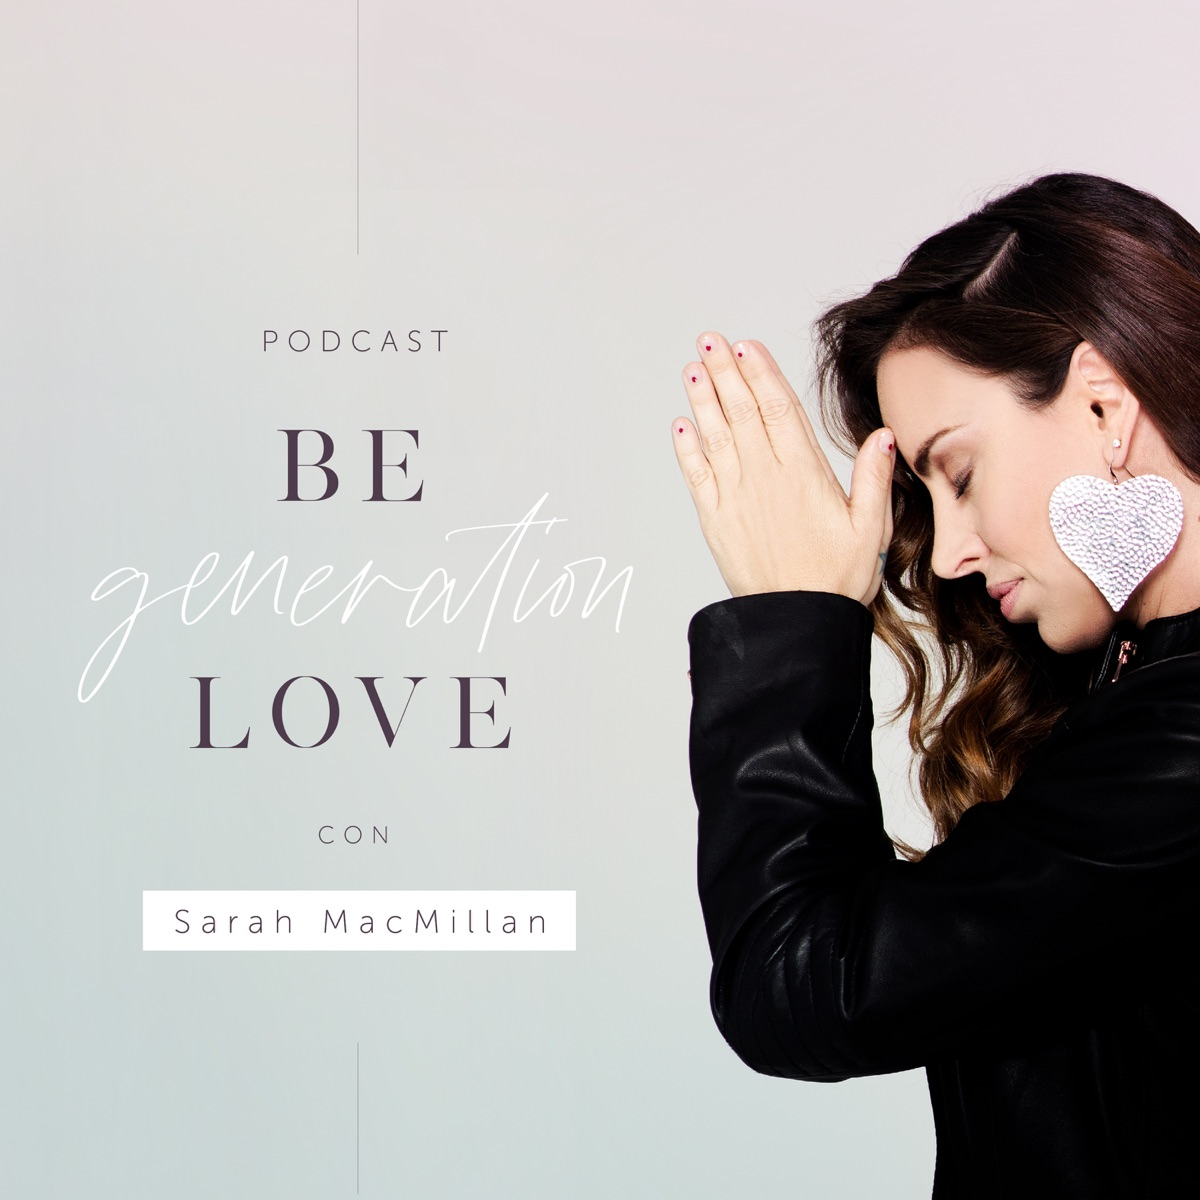 Be Generation Love